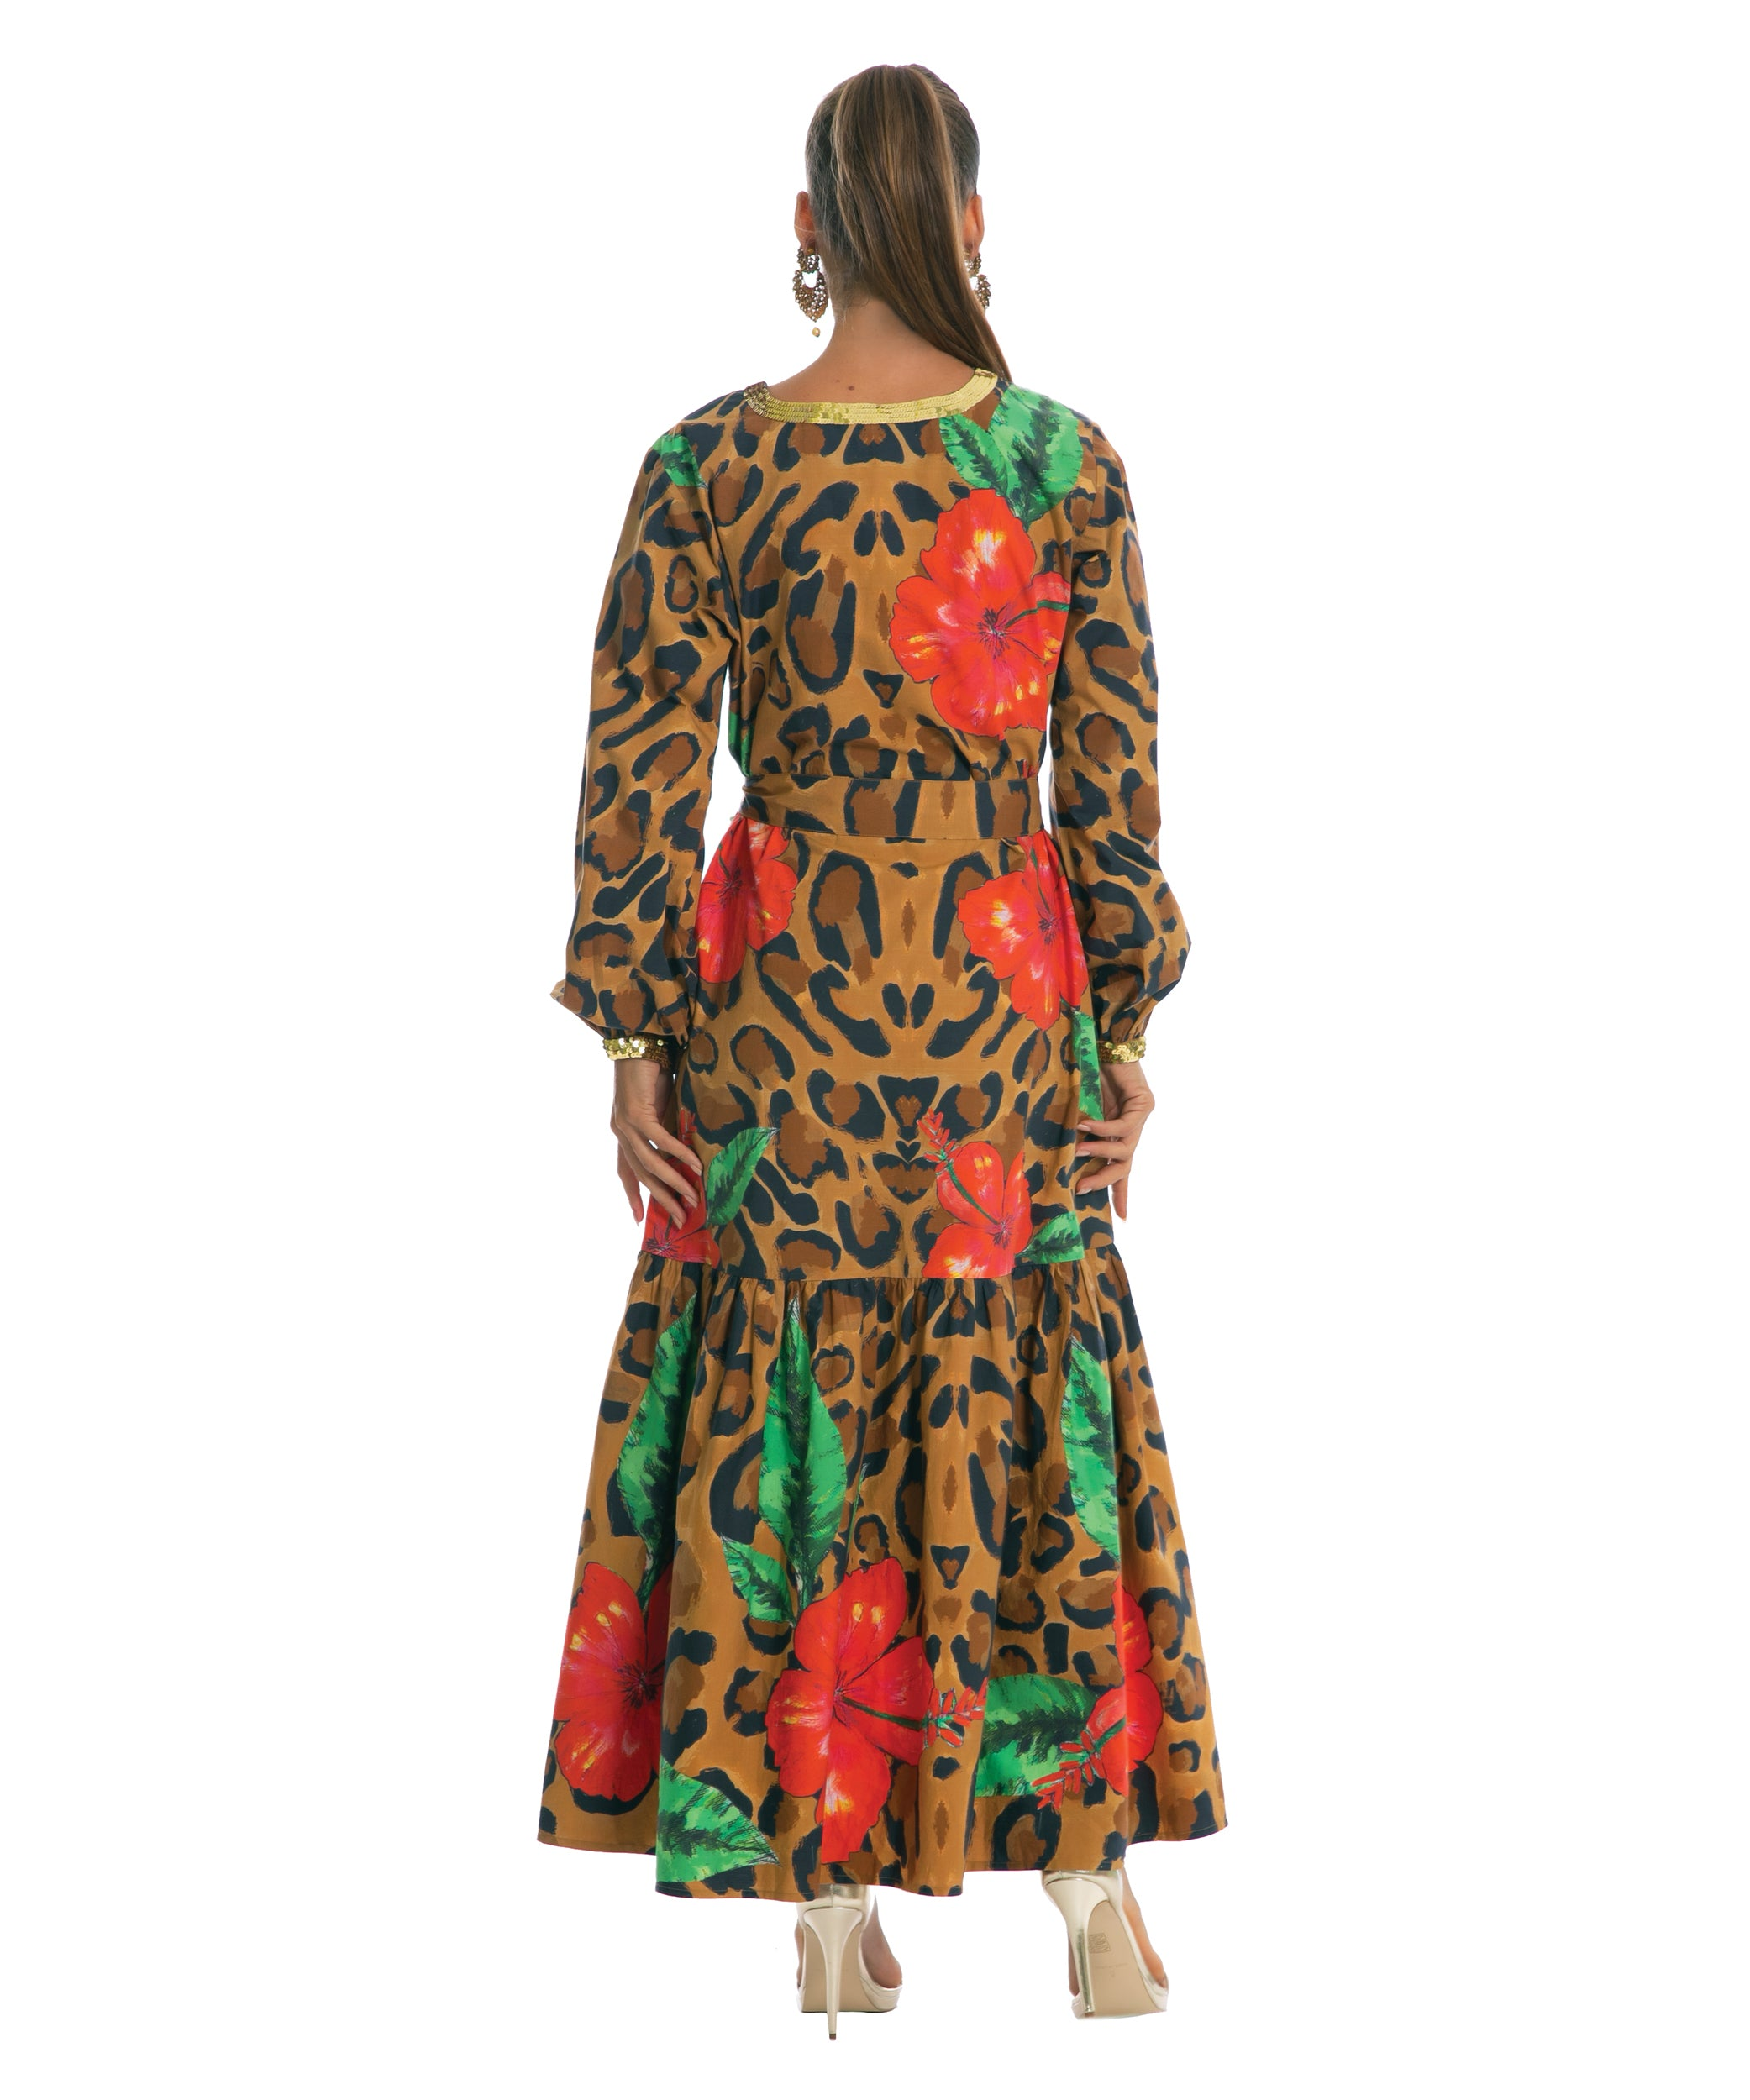 The Hibiscus Long Sleeved Dress